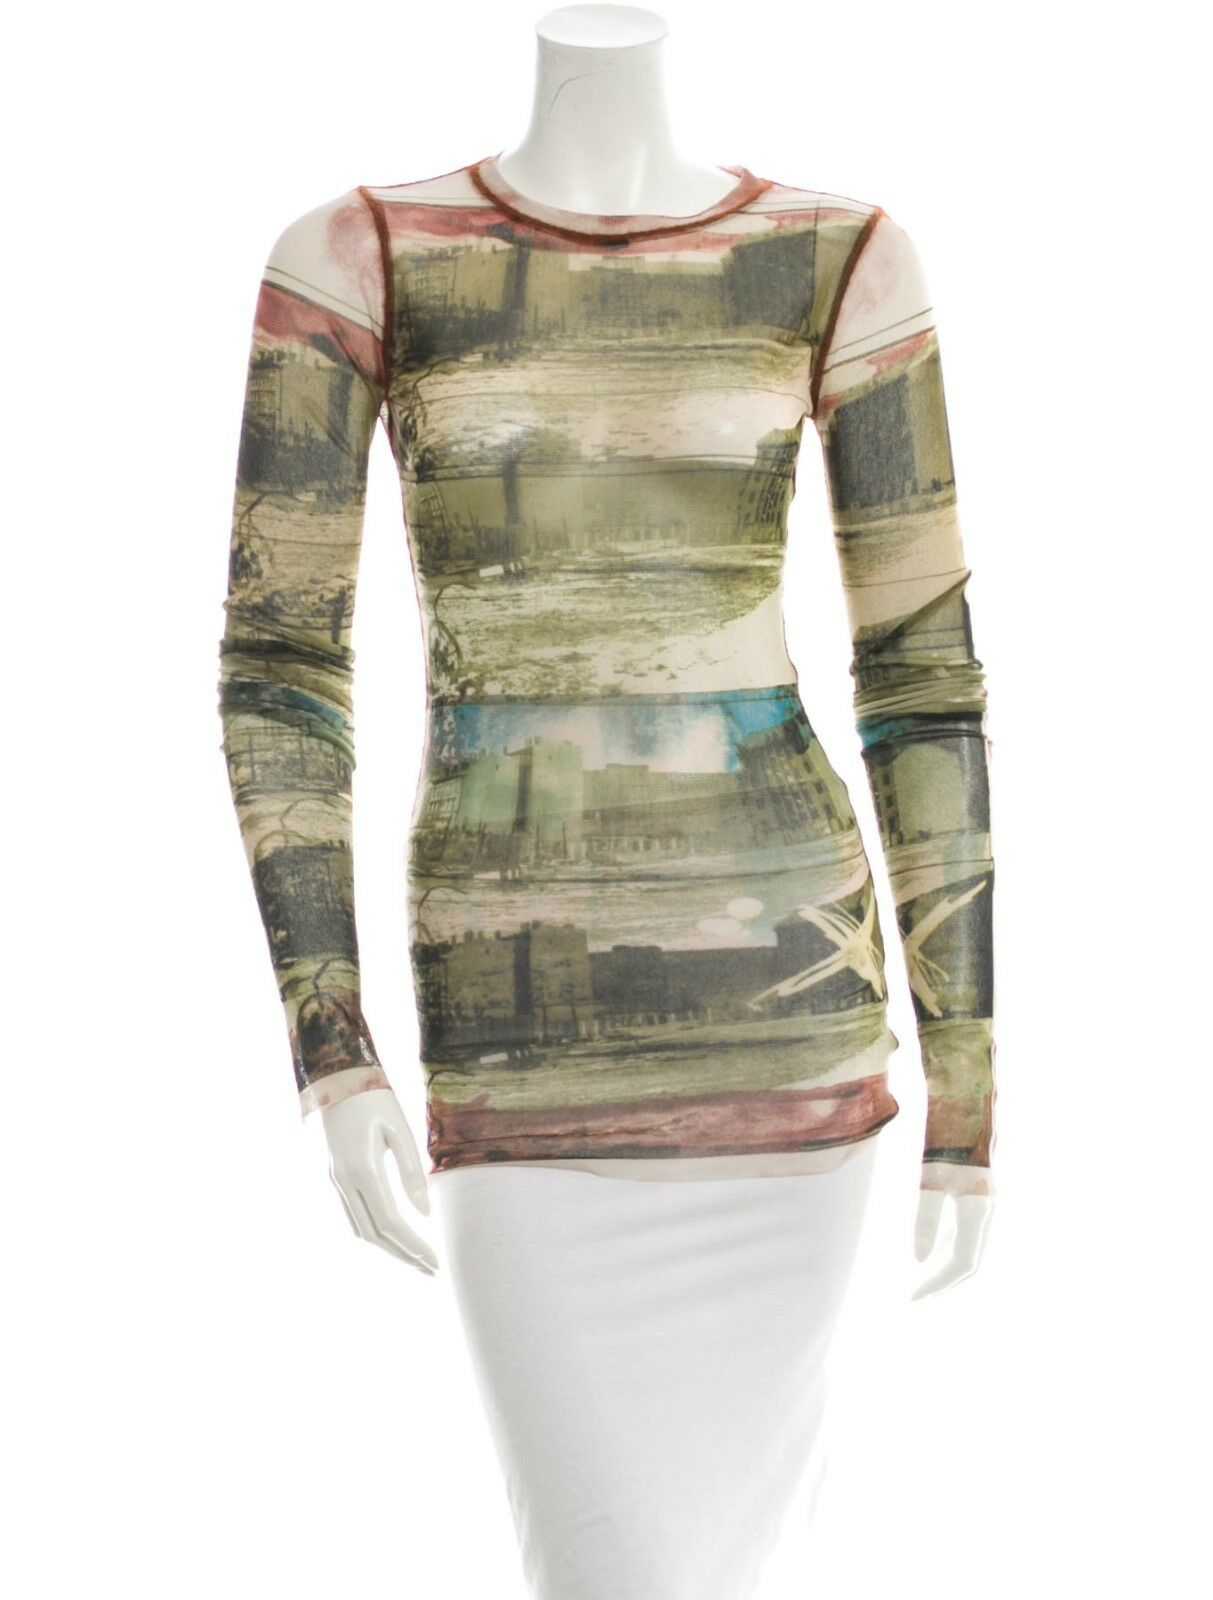 STYLISH NEW SOLD OUT MESH TOP BY JEAN PAUL GAULTIER FEMME